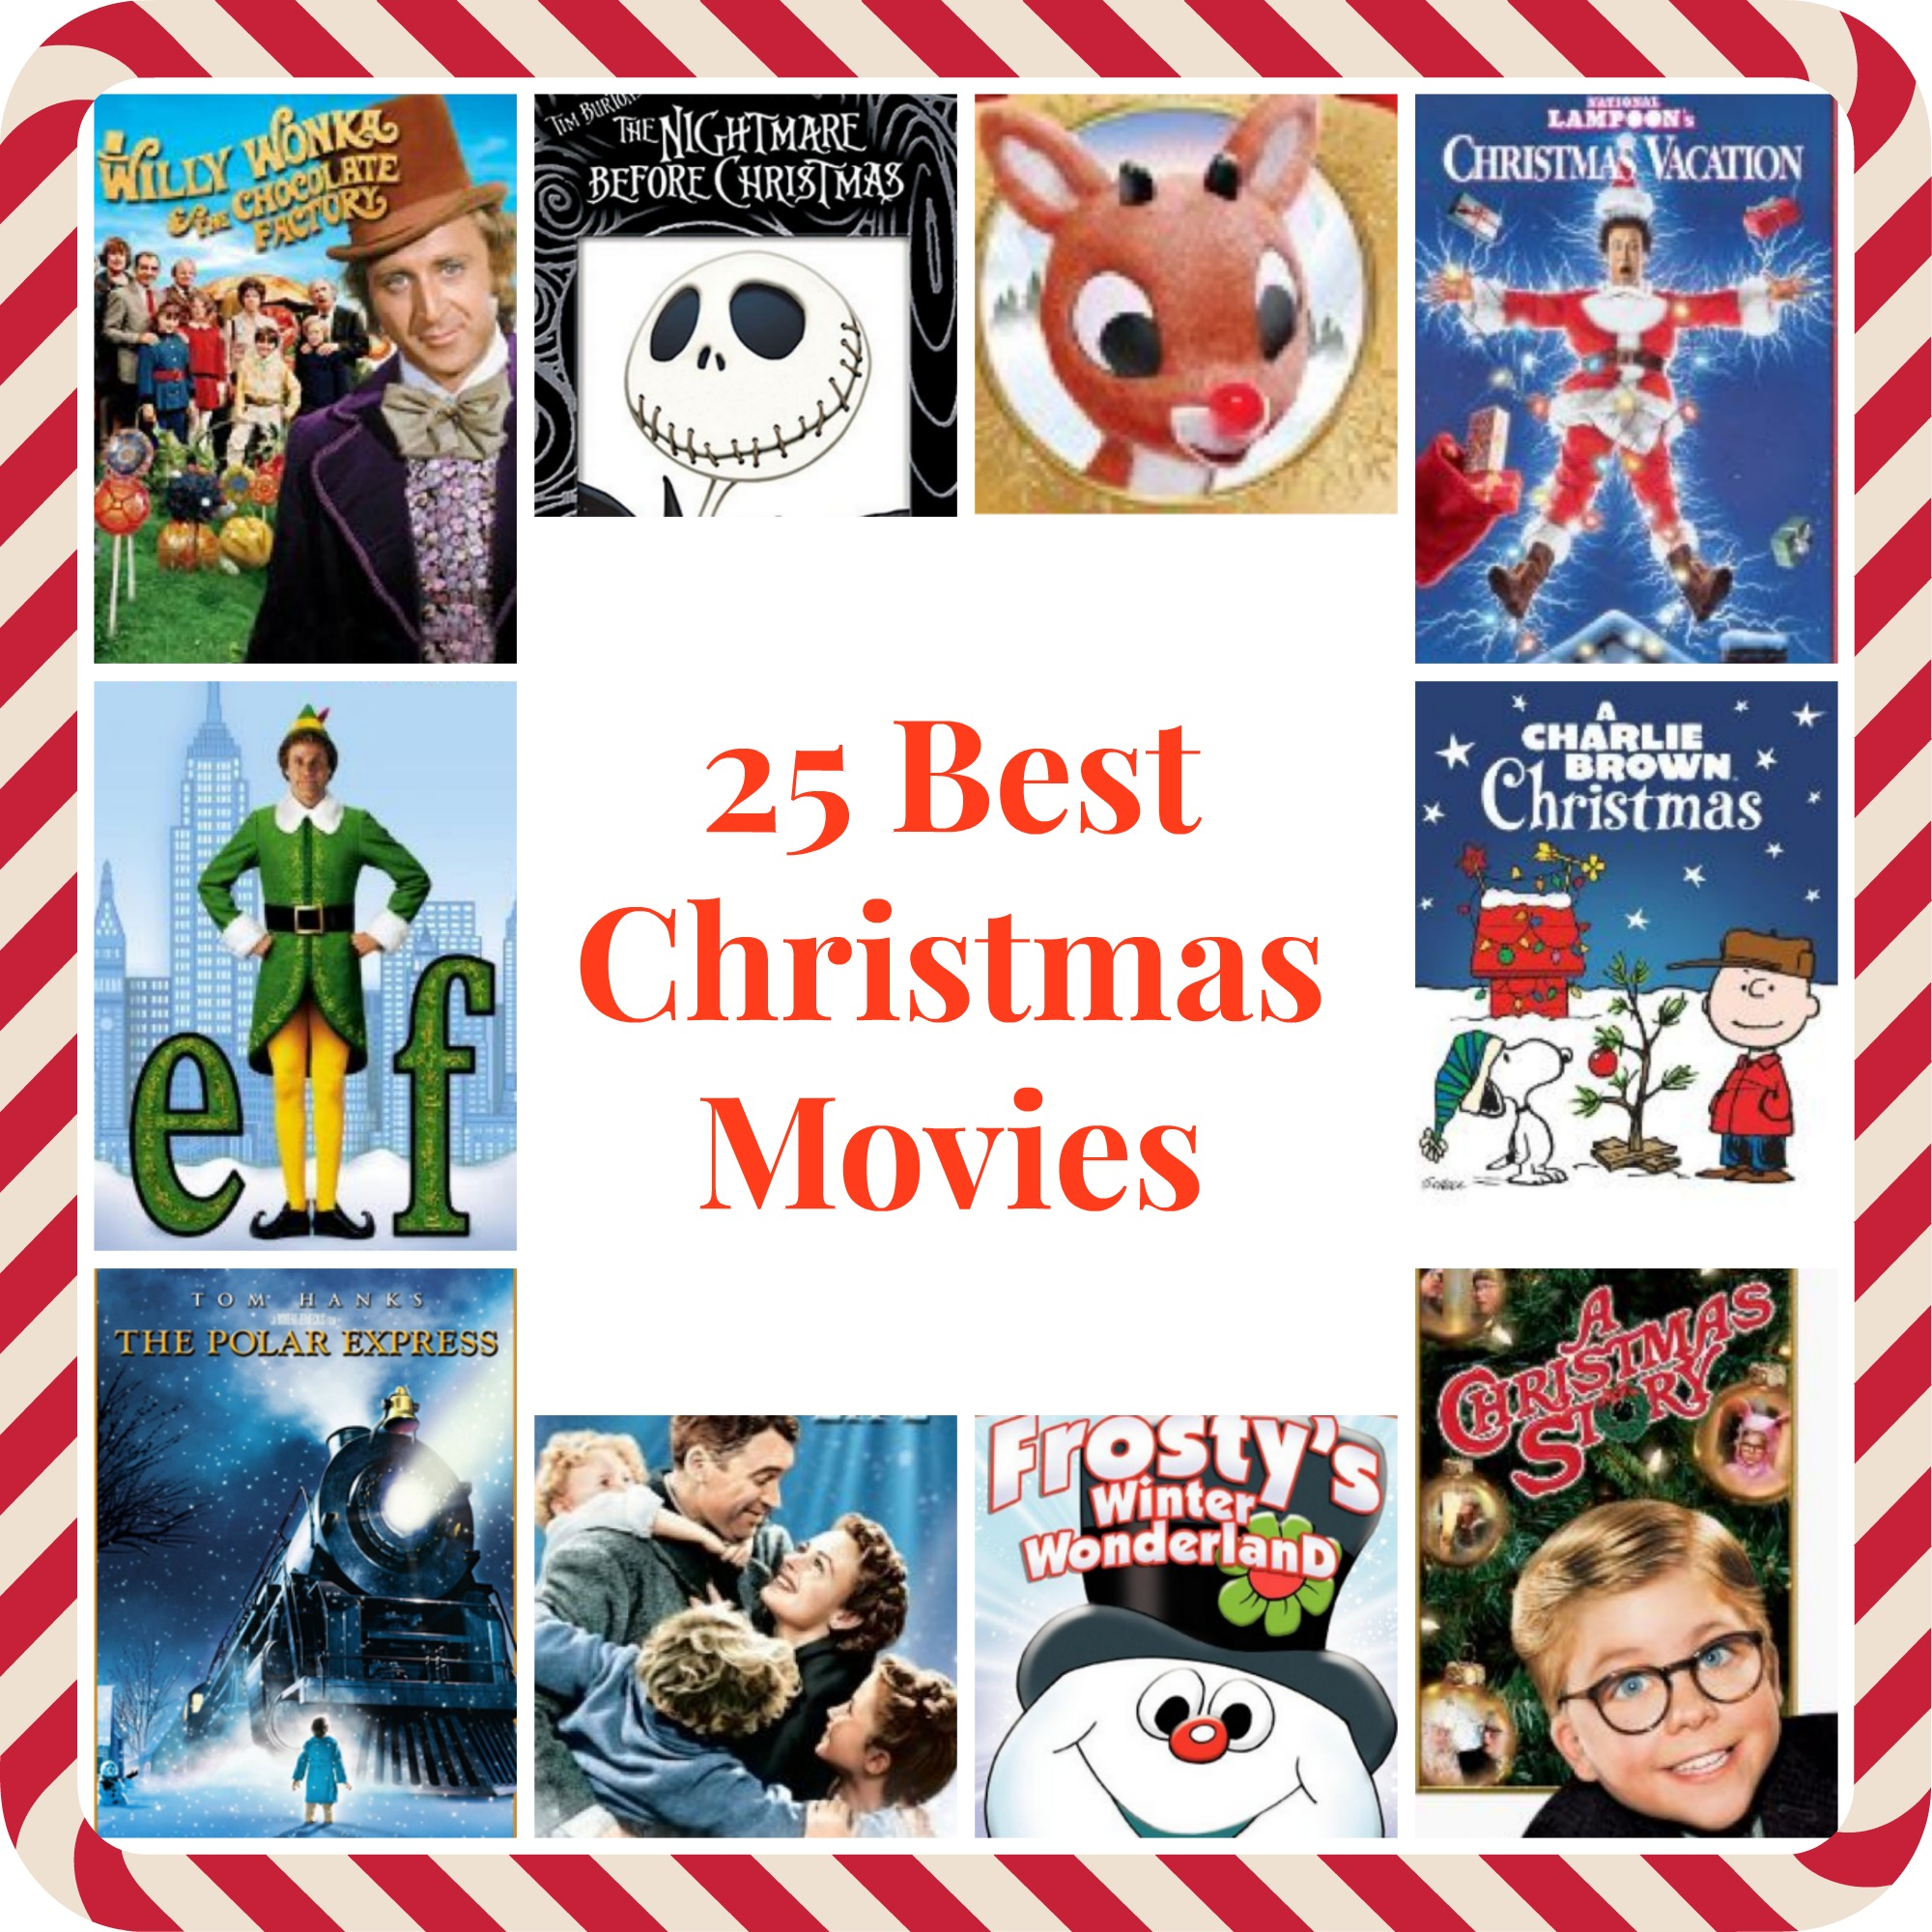 Top 25 Best Christmas Movies #christmasmovies